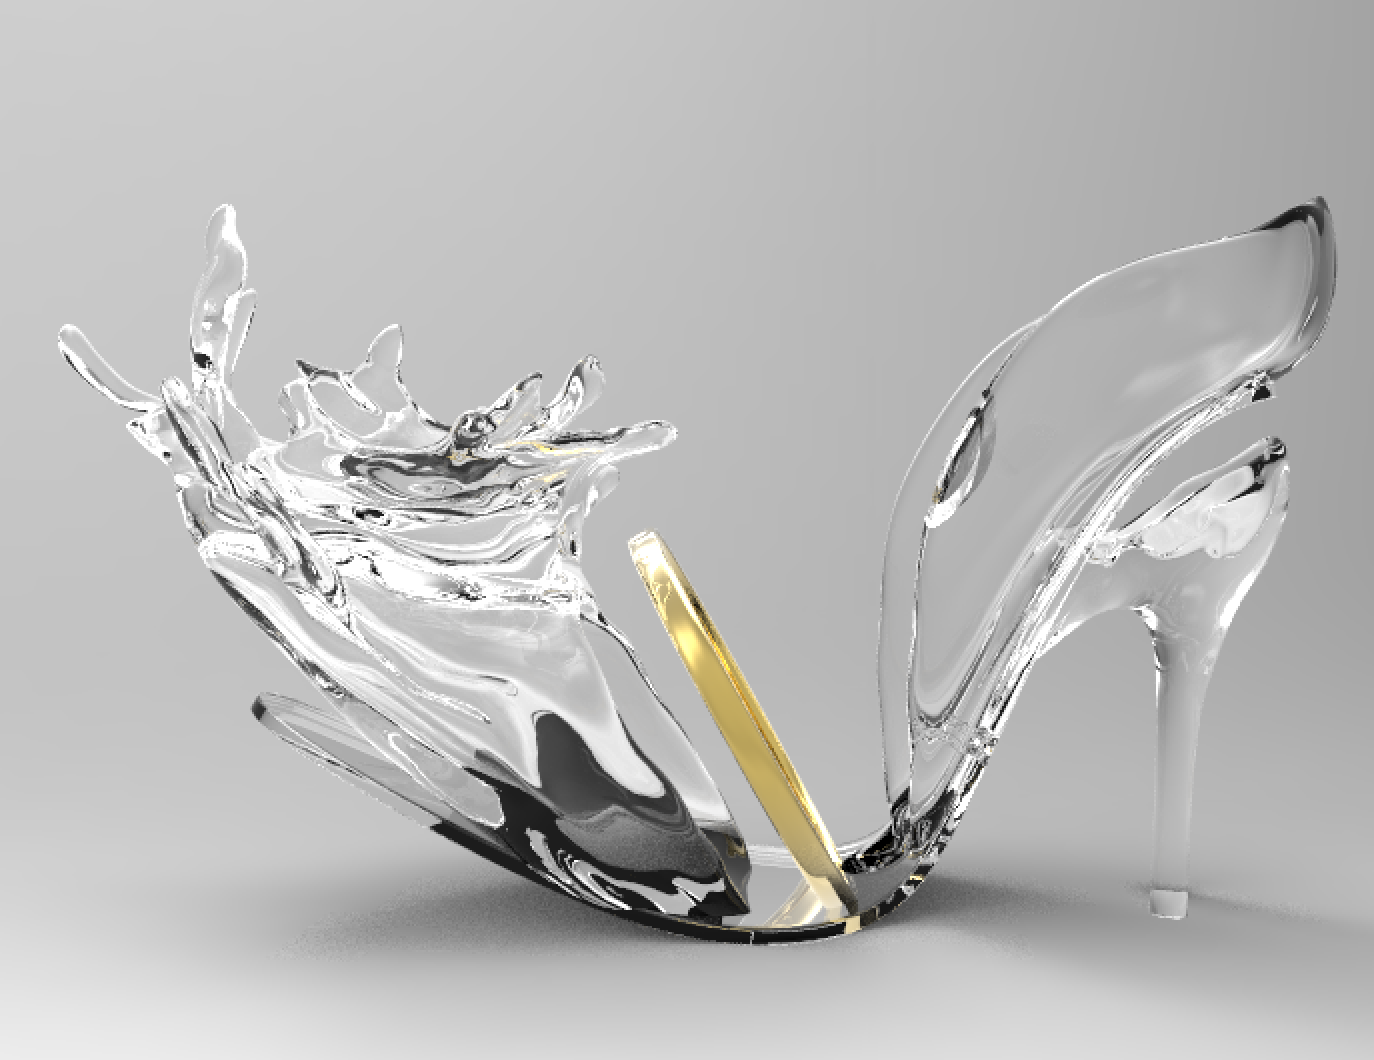 3D Rendering: After many rounds of revisions, we finally got it right! Special thanks to Declan Hennessey for helping me to get the water splash right!